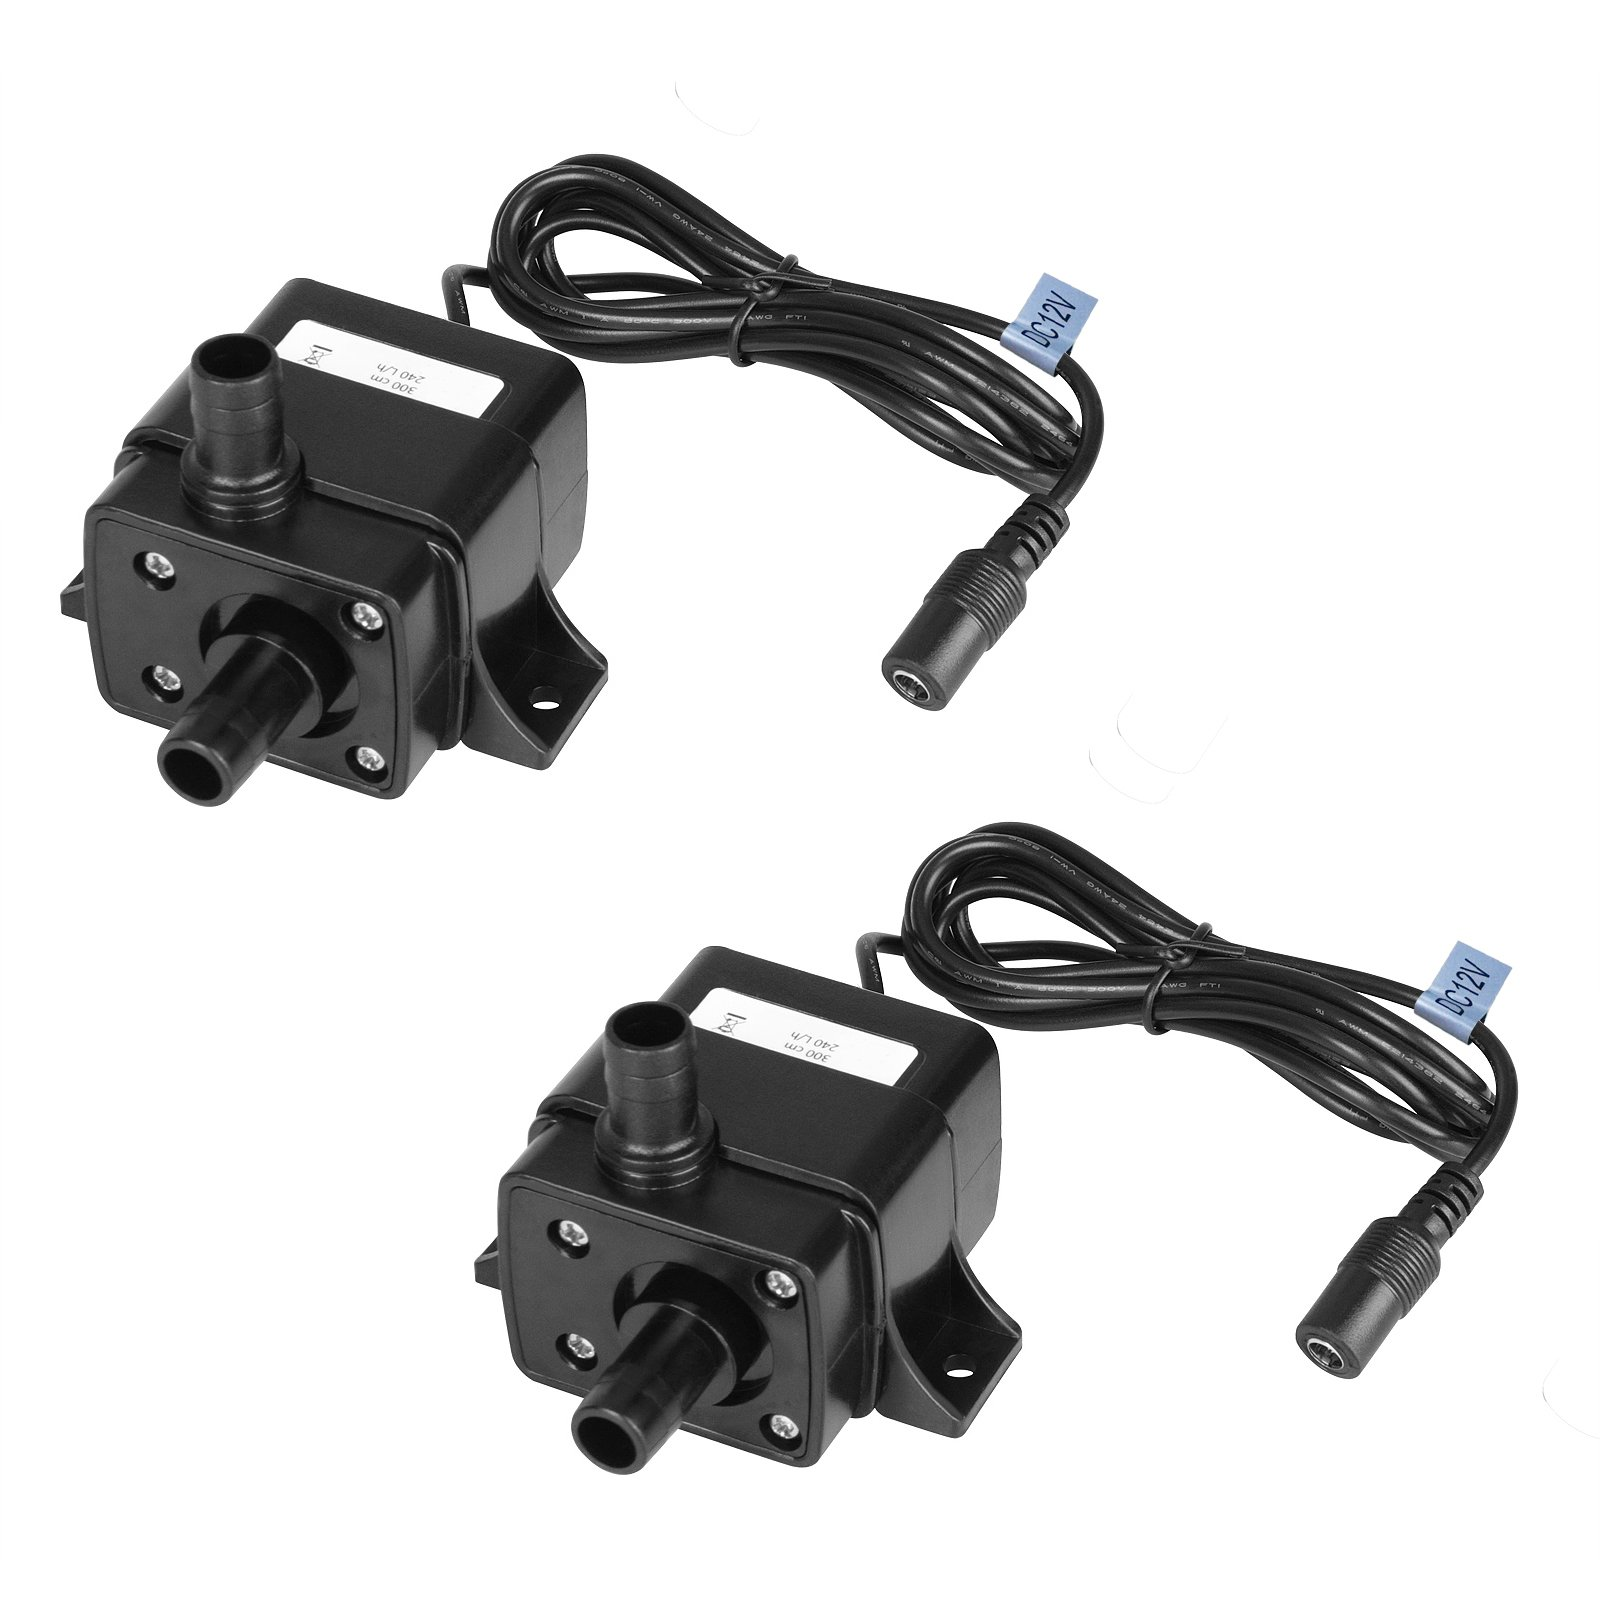 MOUNTAIN_ARK 2 Pack 63 GPH (240L/H) Submersible Water Pump DC 12V 3.6W 9.8ft Lift for Fish Tank Pumping, Rockery Water, Bonsai Fountain,Fresh Water Only